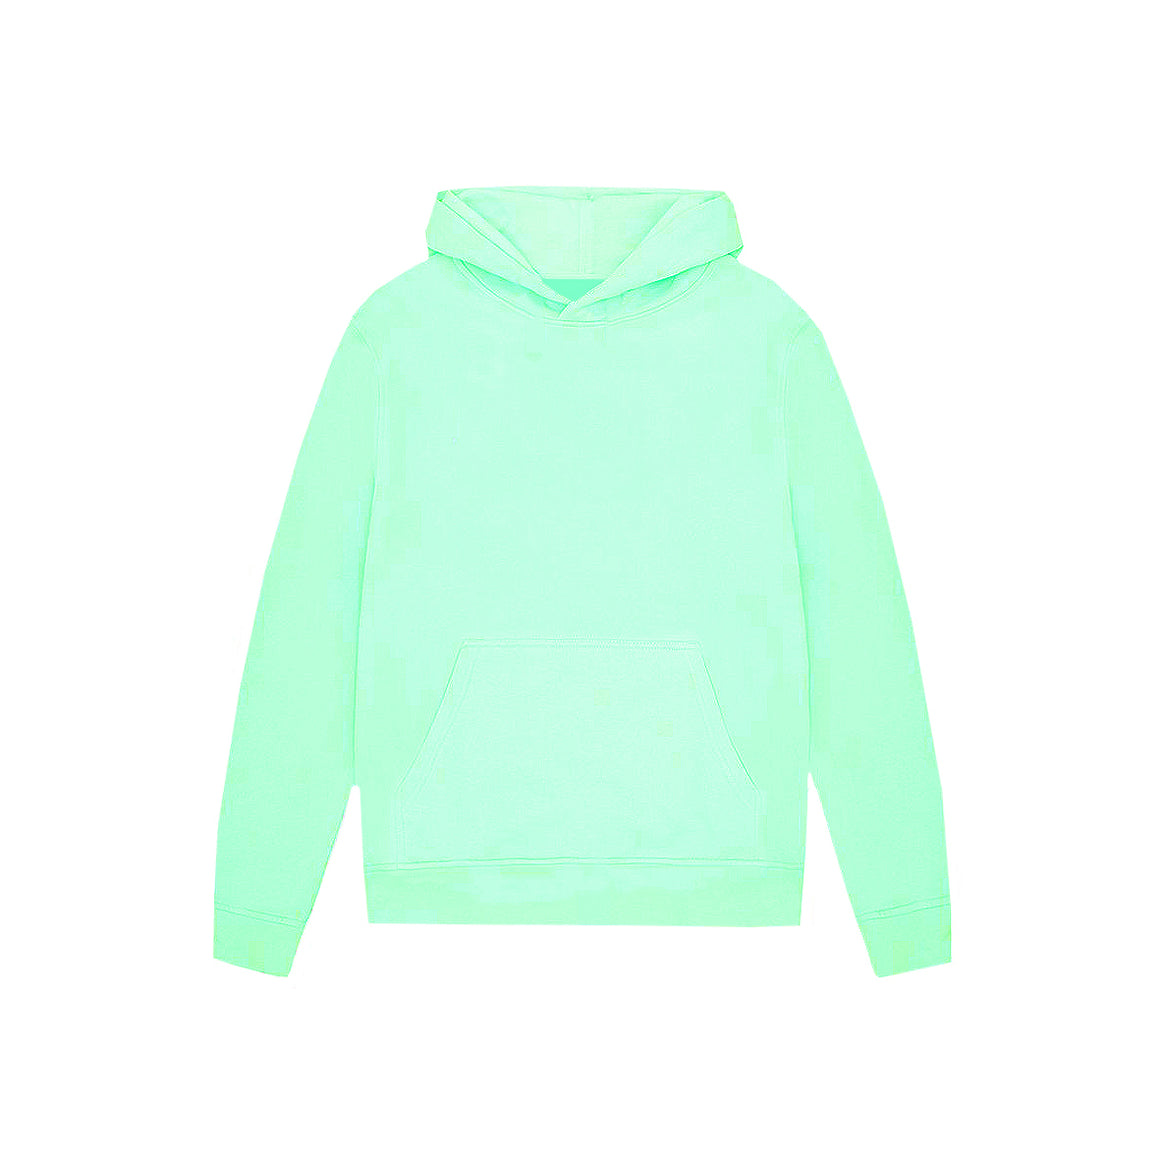 UNBRANDED ESSENTIAL PULLOVER HOODY | PEPPERMINT BLUE